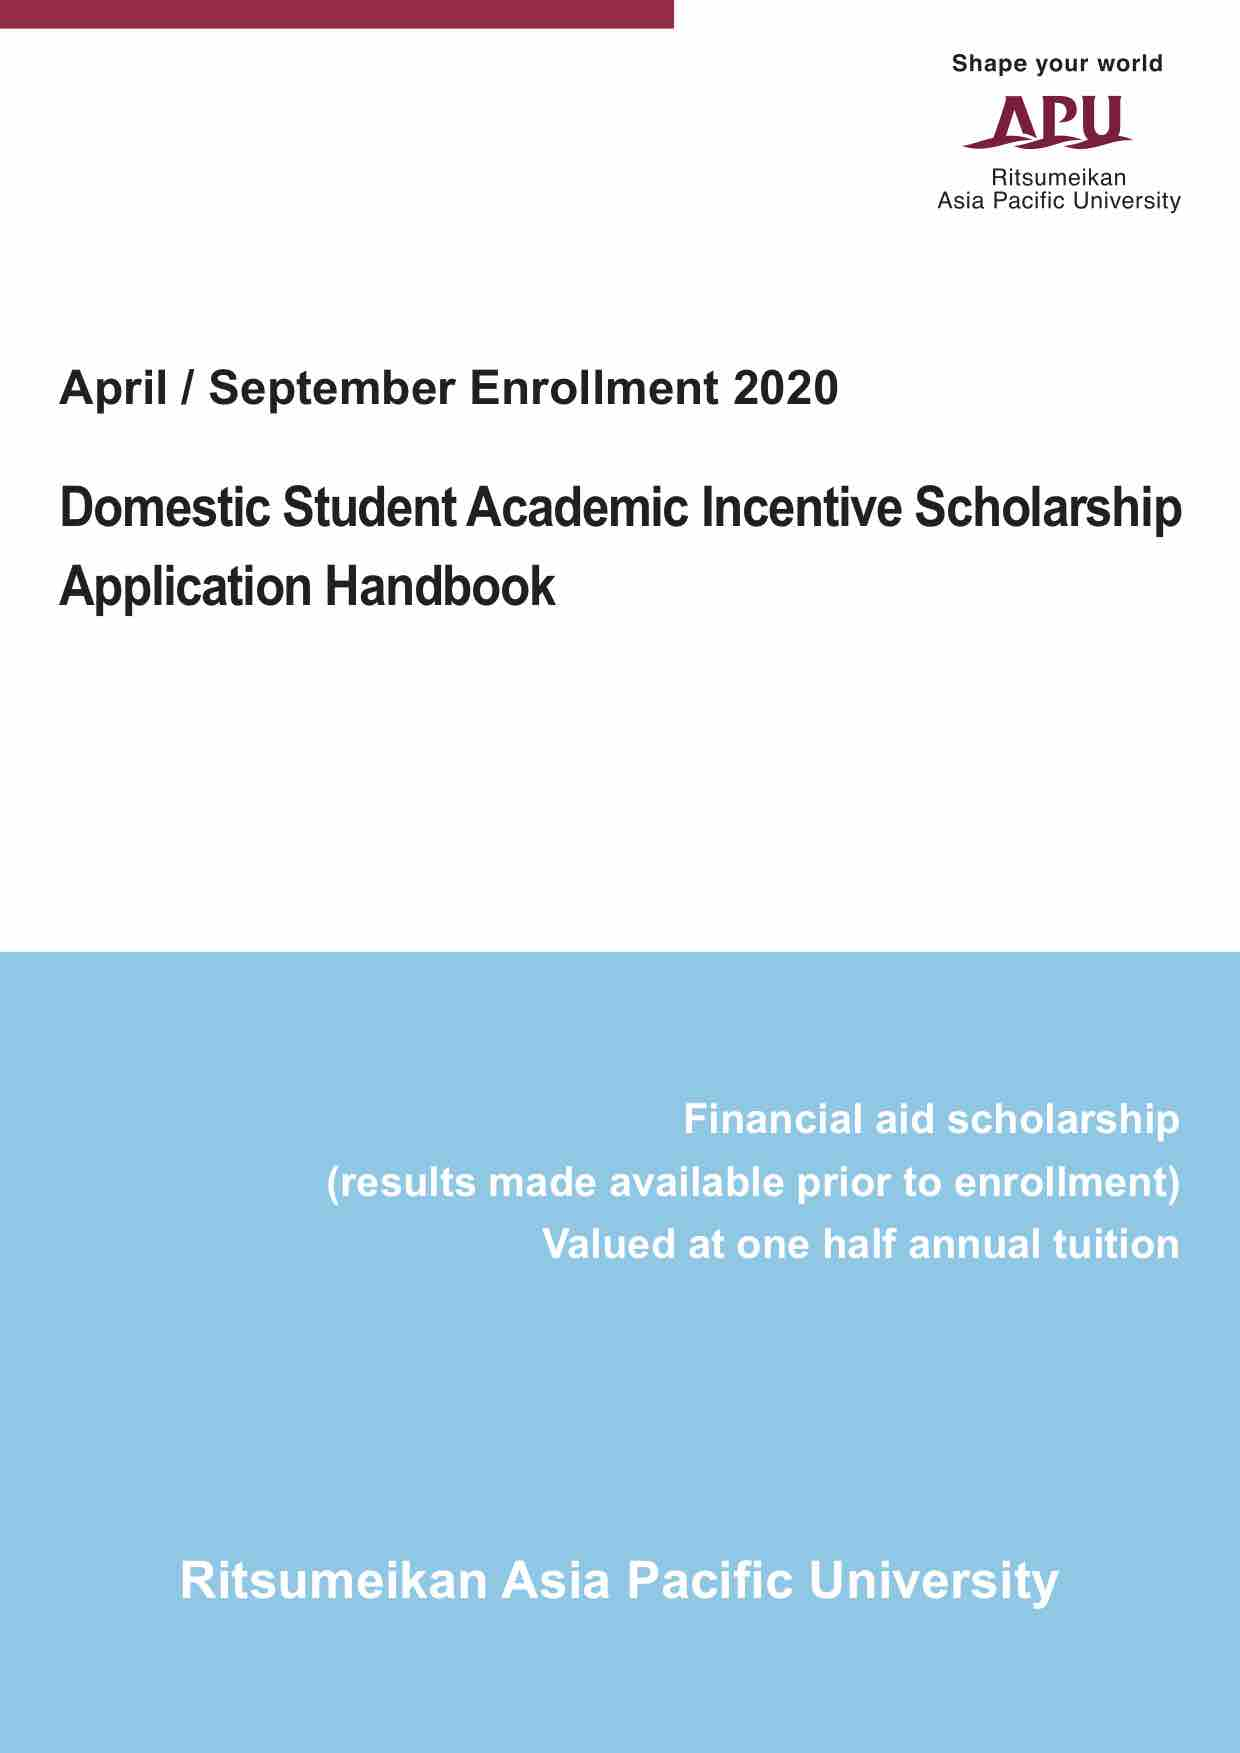 Application Guidelines for the Domestic Students Academic Incentive Scholarship